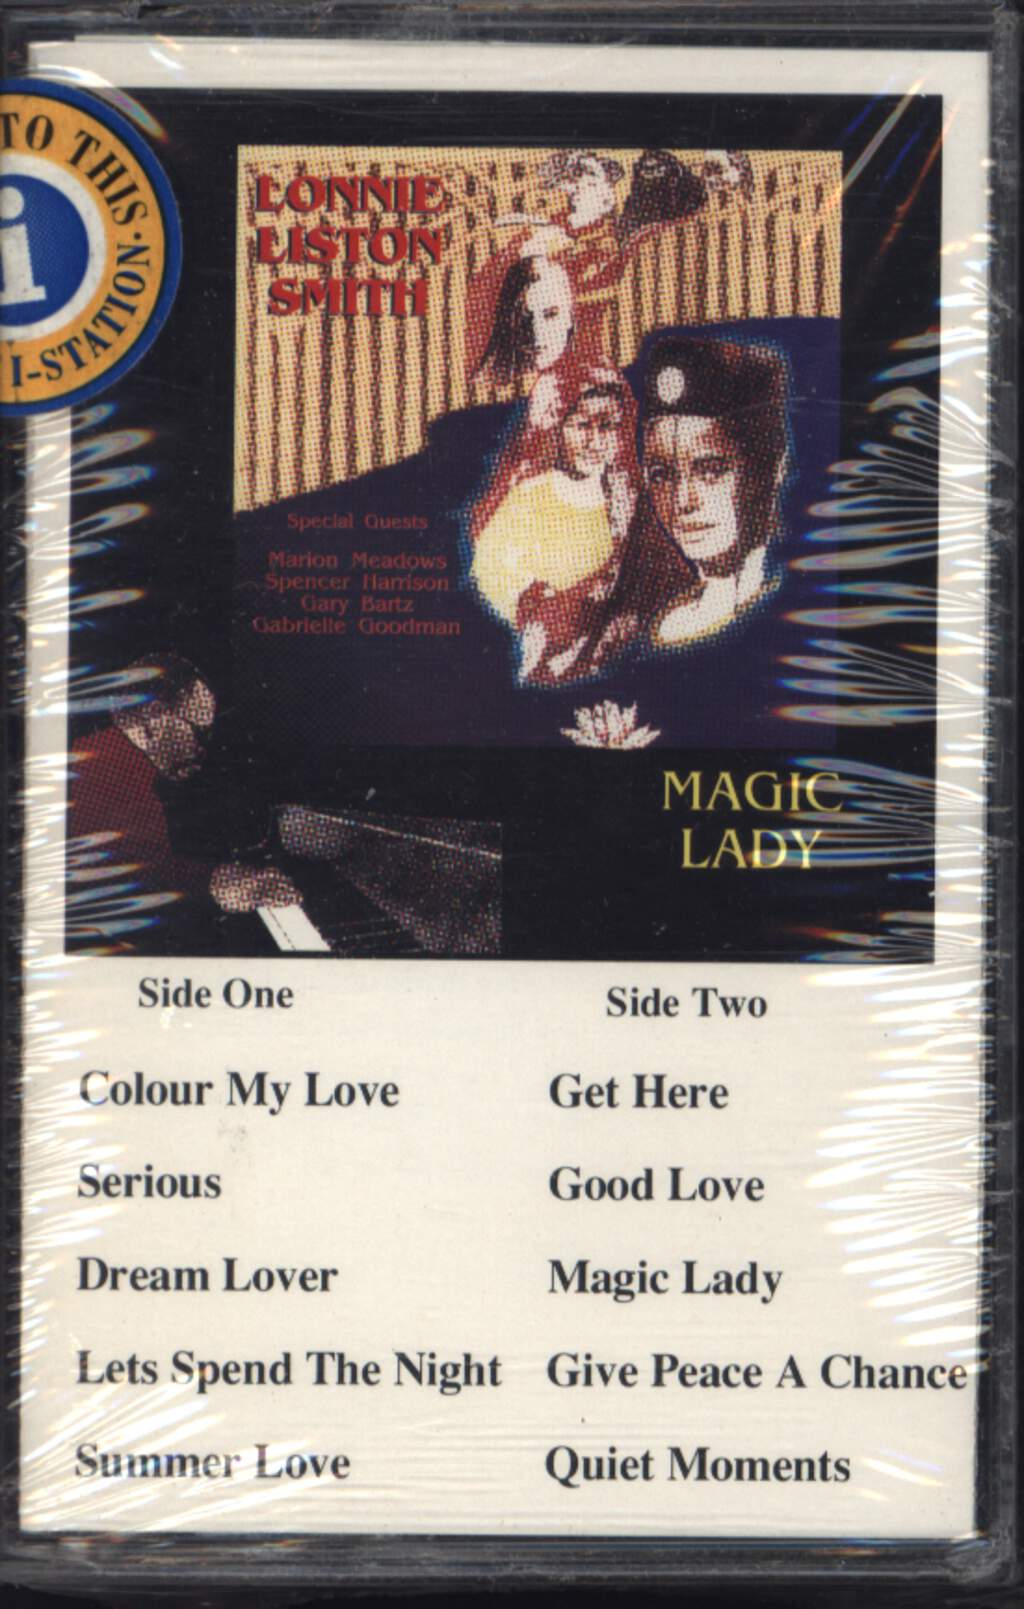 Lonnie Liston Smith: Magic Lady, Compact Cassette